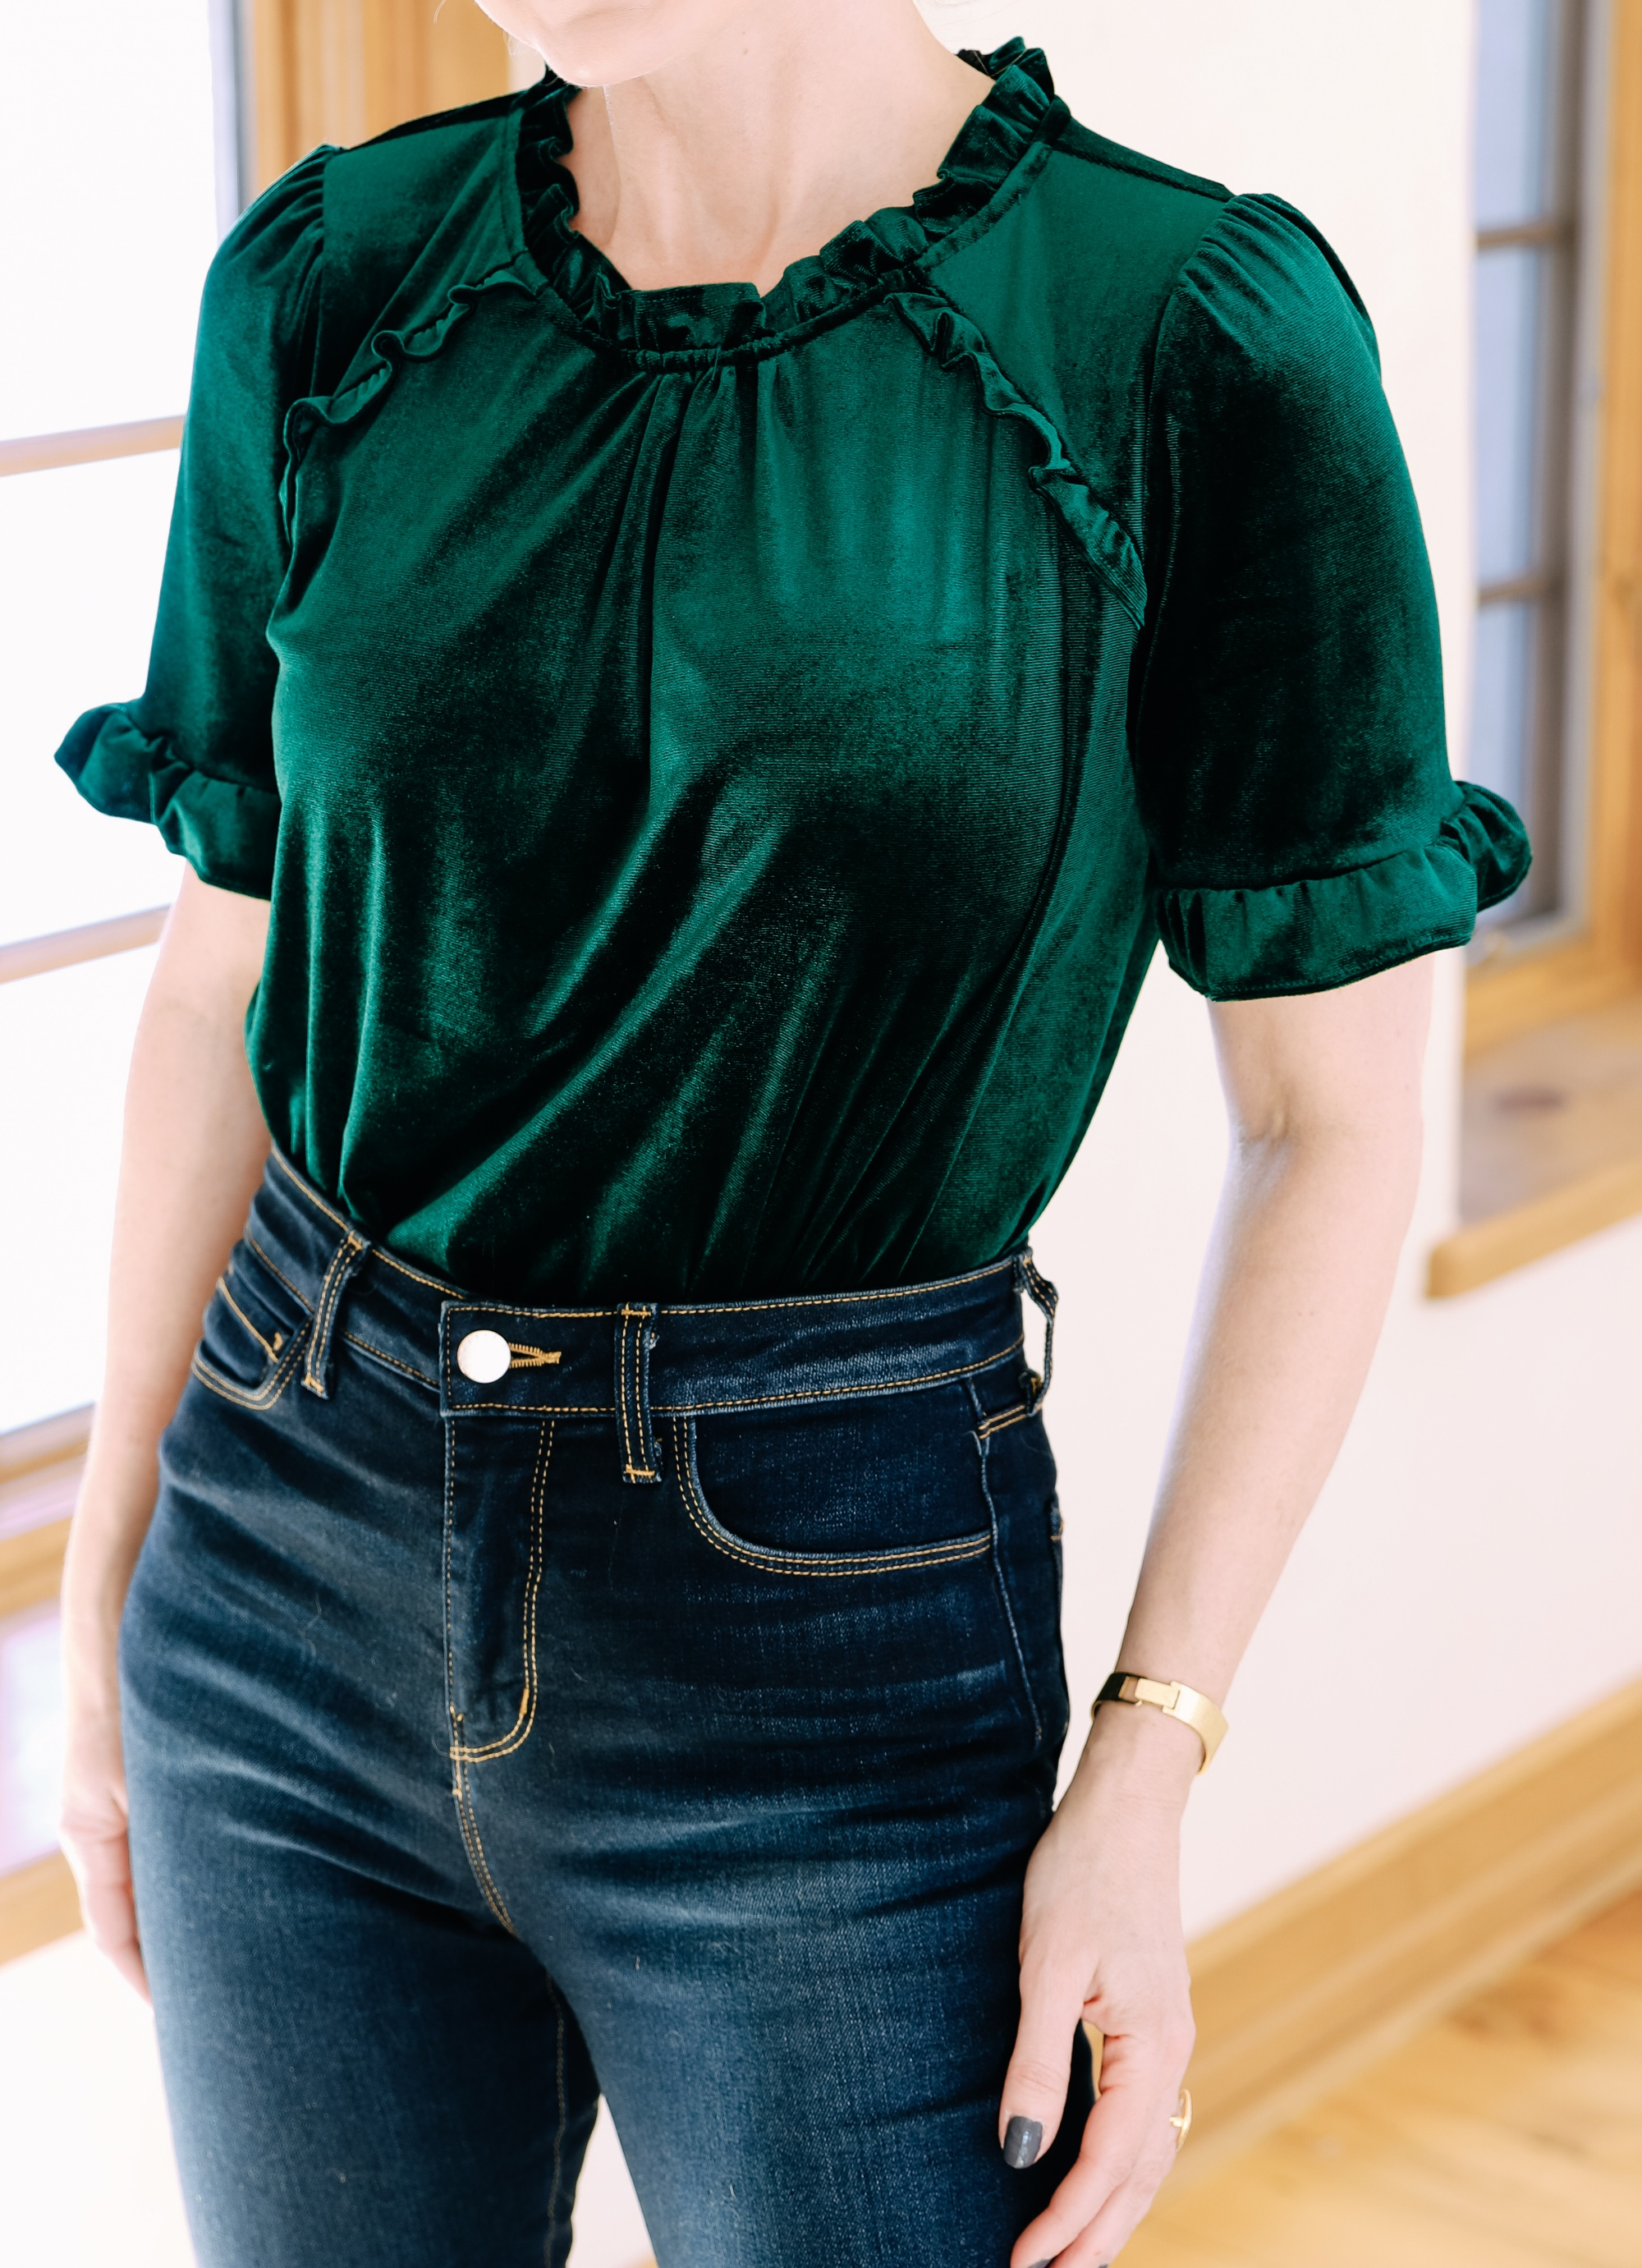 Holiday Outfits With Jeans, Erin Busbee of Busbee Style wearing a green velvet ruffle sleeve blouse by Gibson, L'Agence dark wash skinny jeans, and black Jimmy Choo Romy pumps from Nordstrom in Telluride, Colorado